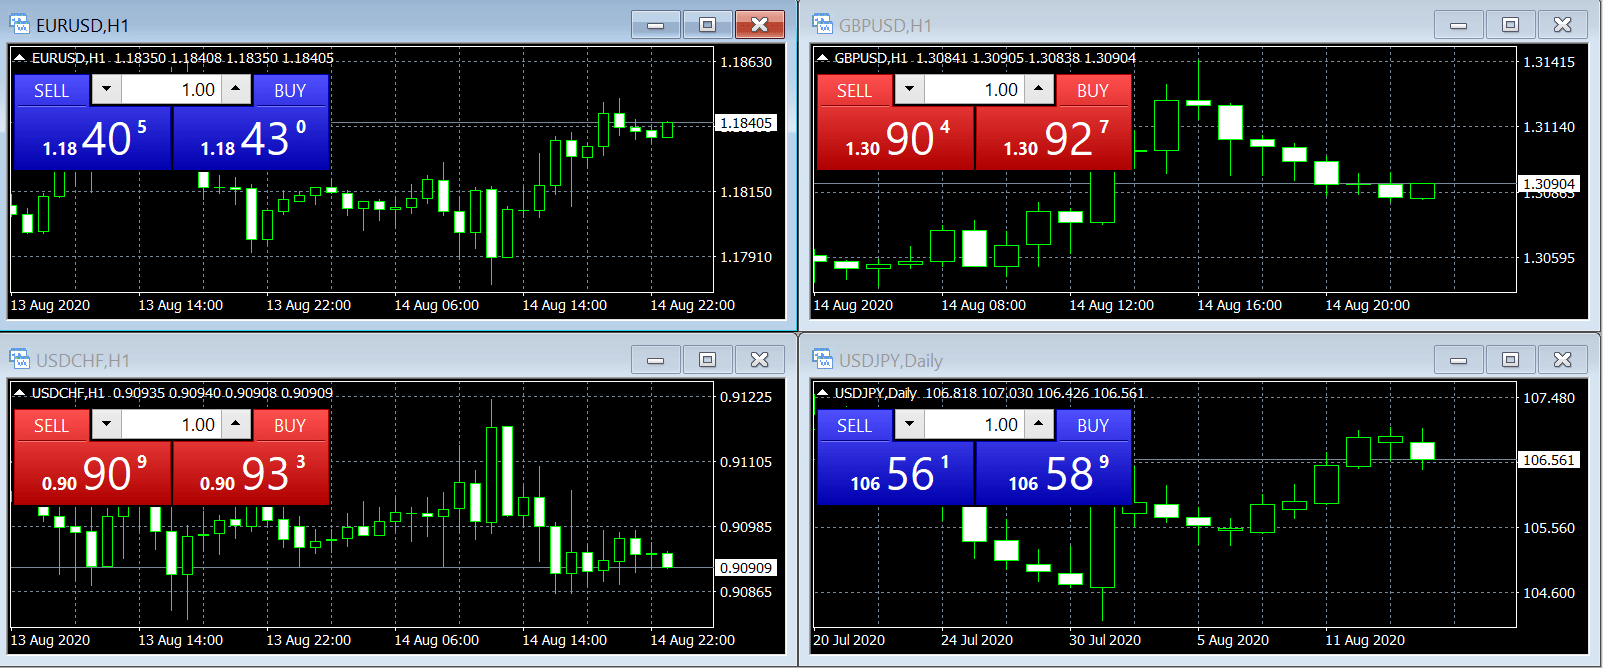 tradingplatforms-metatrader4-whatismt4-and-howtouseit-multi-chart-image